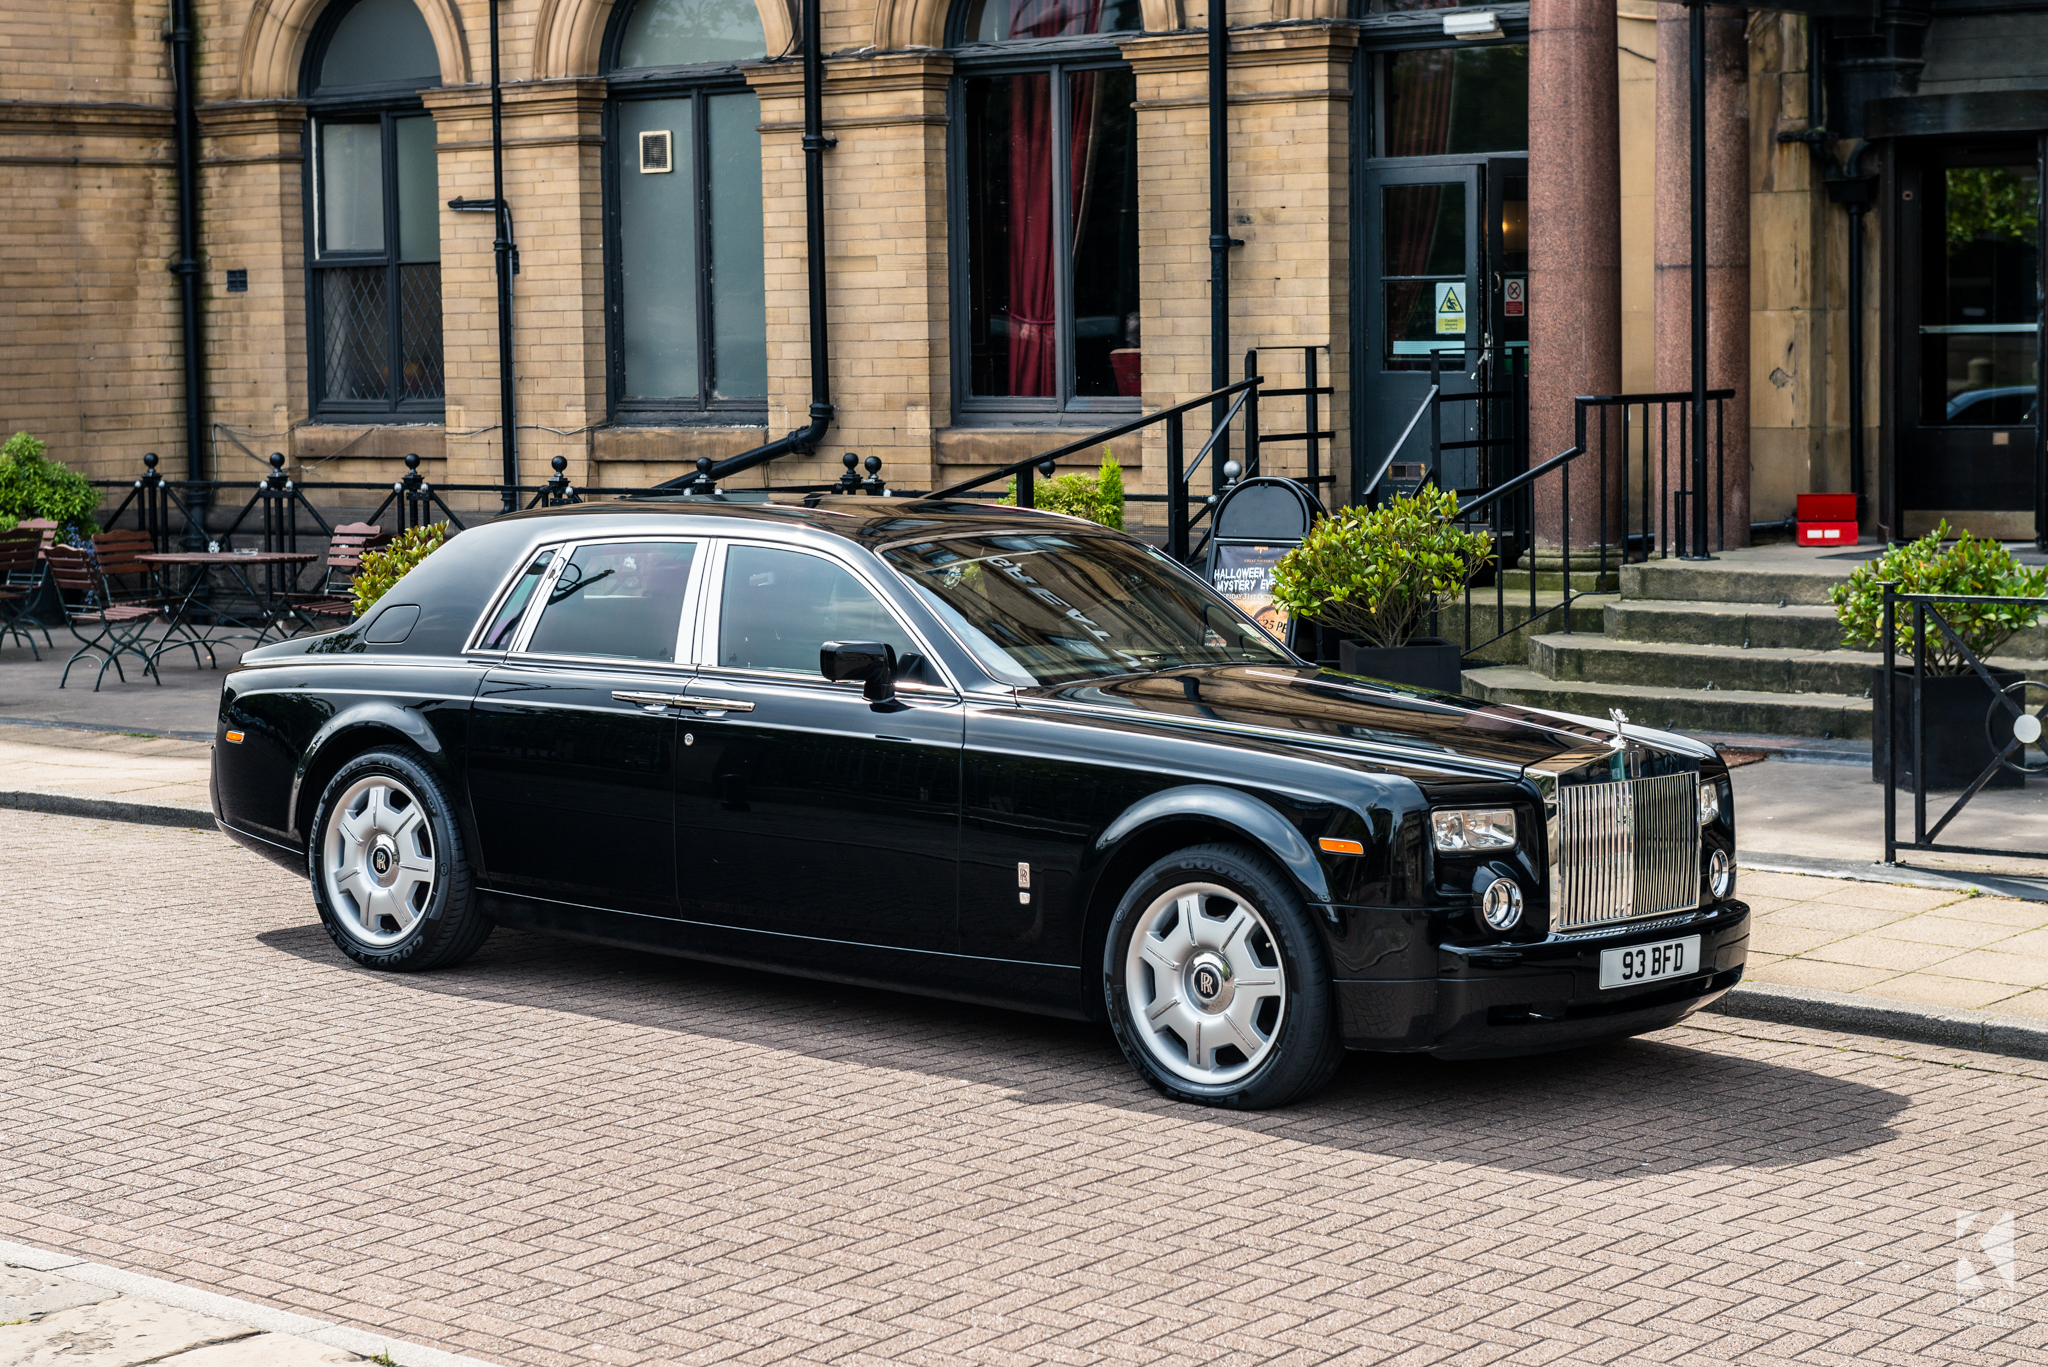 rolls royce phantom 2015 black. rolls royce phantom in black 2015 d